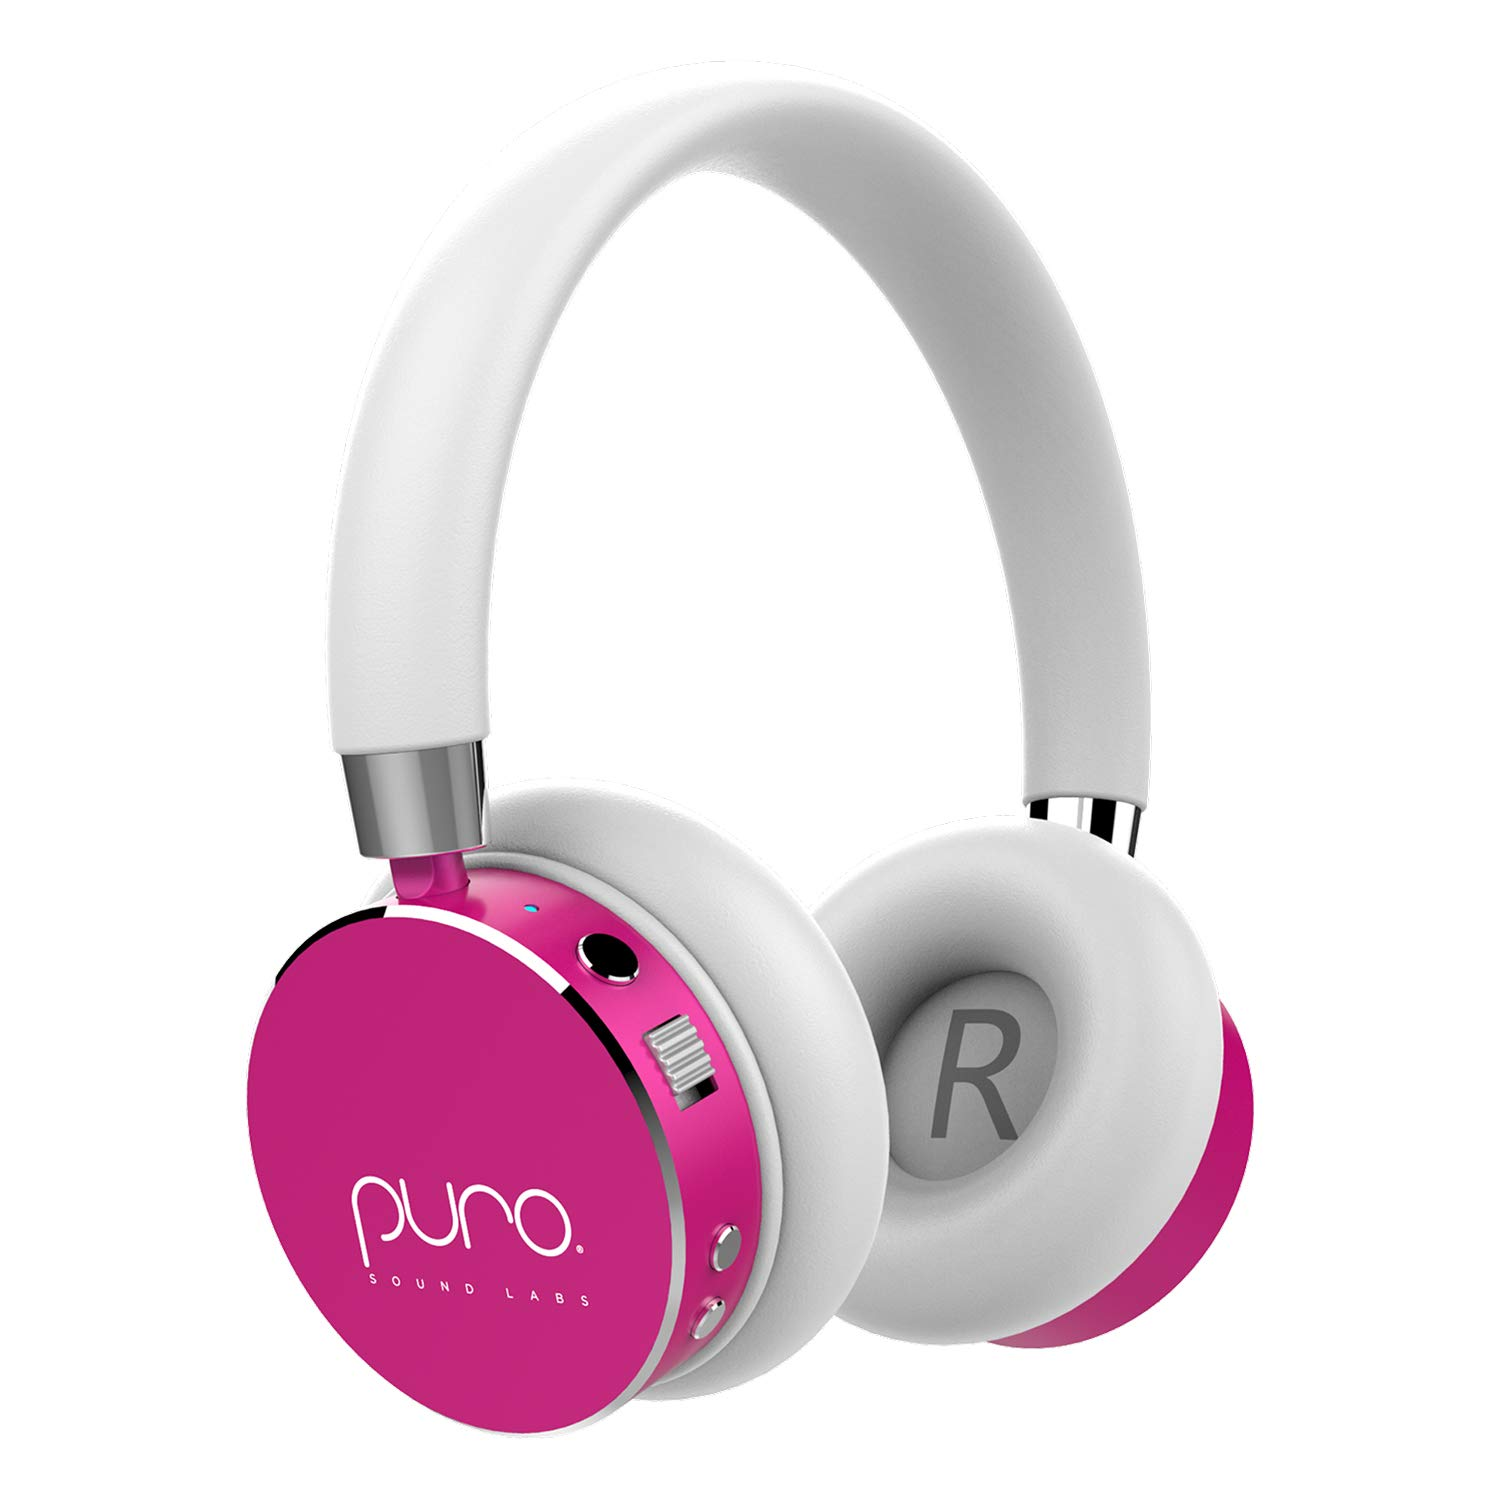 Puro Sound Labs BT2200 Kids Volume-Limiting Over-Ear Wireless Headphones (Pink)